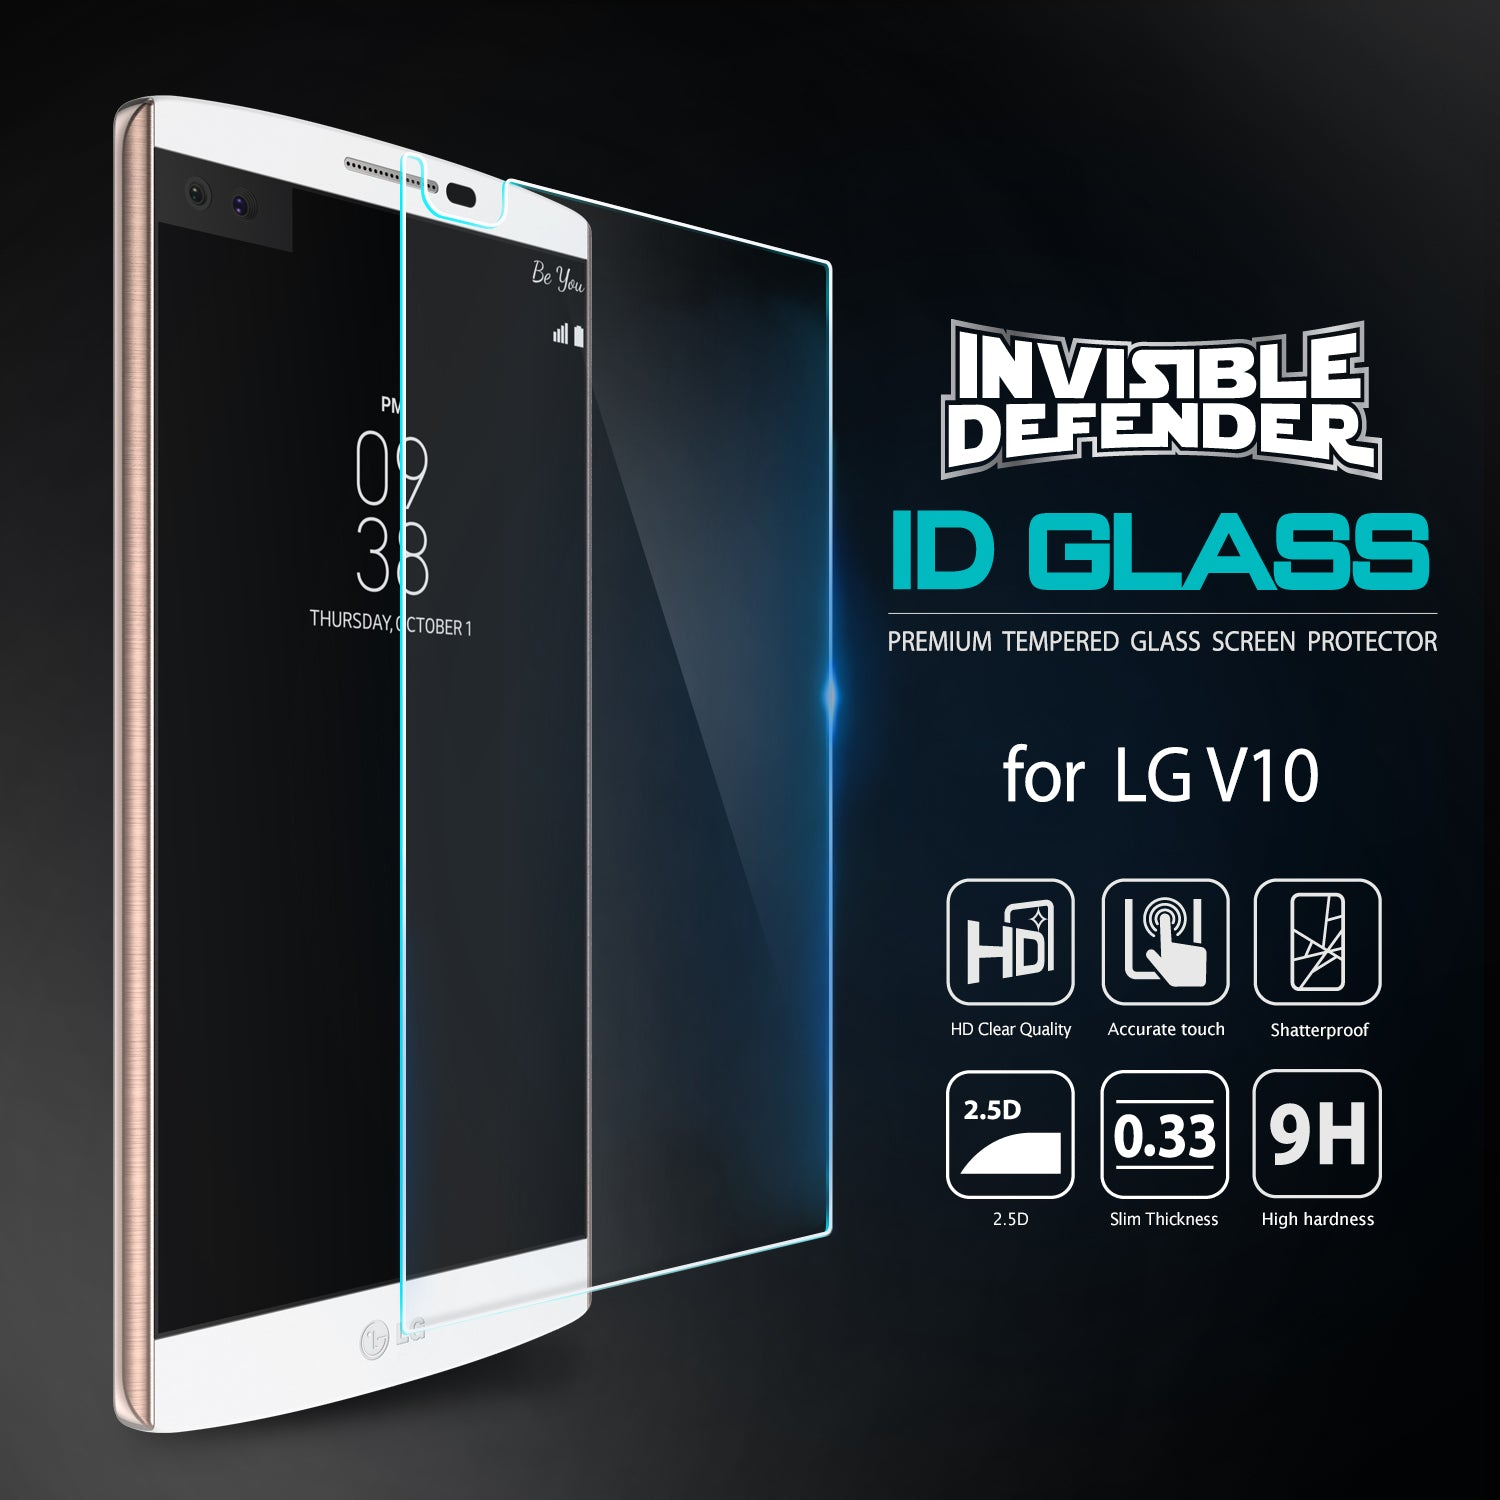 lg v10, ringke invisible defender 0.33mm tempered glass screen protector